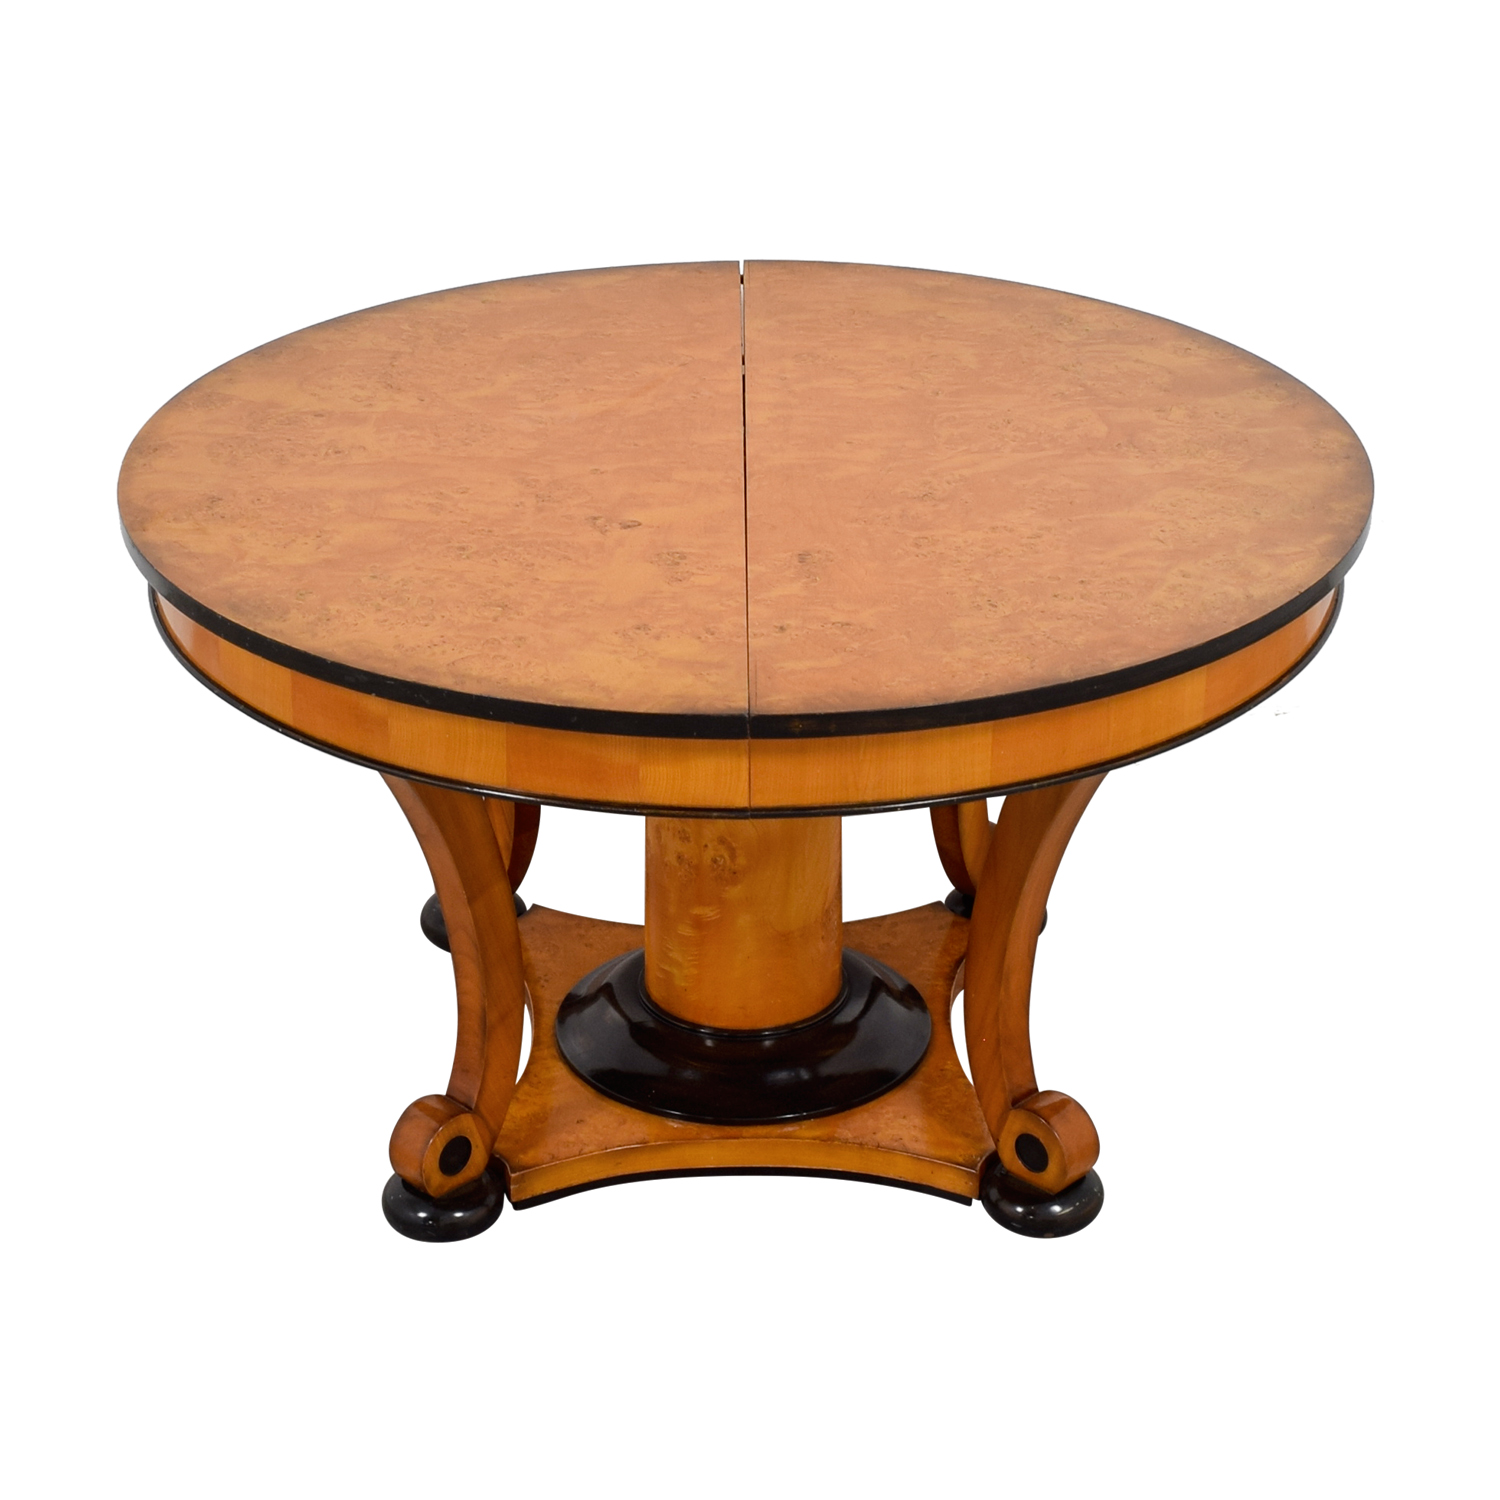 Bloomingdale's Bloomingdale's Beidermeider Round Cherry Wood  Dining Table Tables